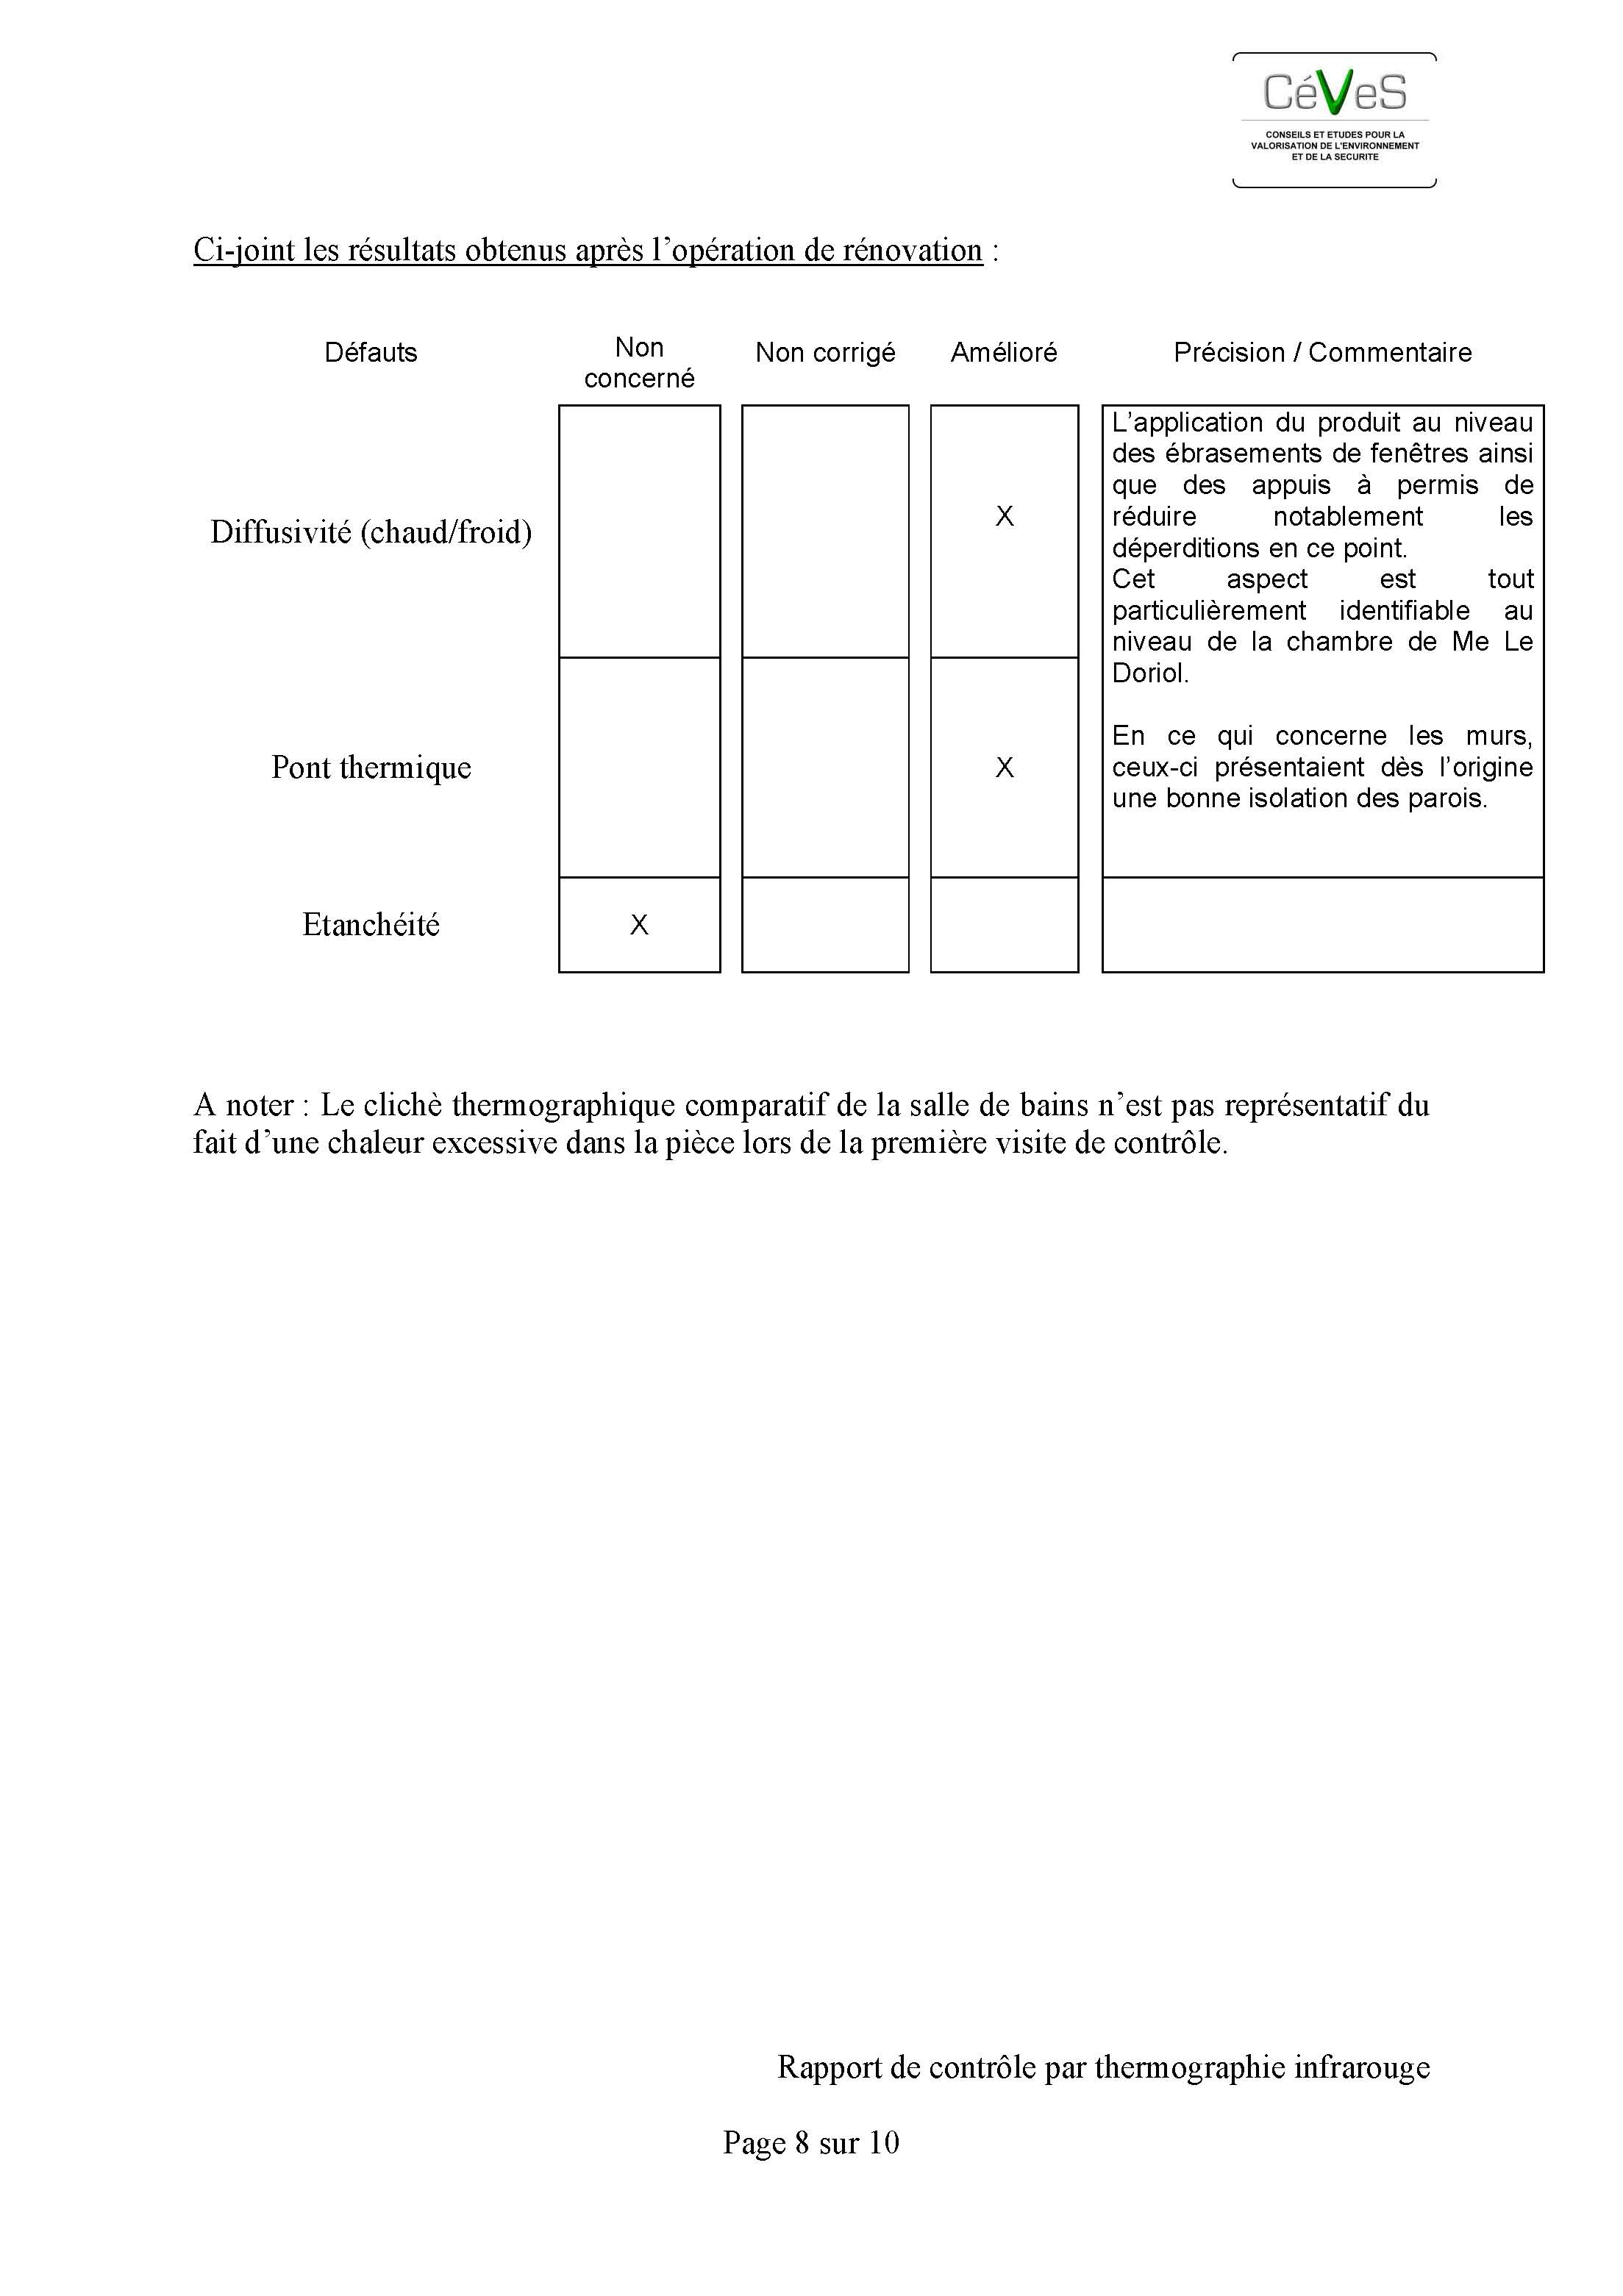 Rapport Complet Thermacote 56xxx-LD (3)_1540313242065